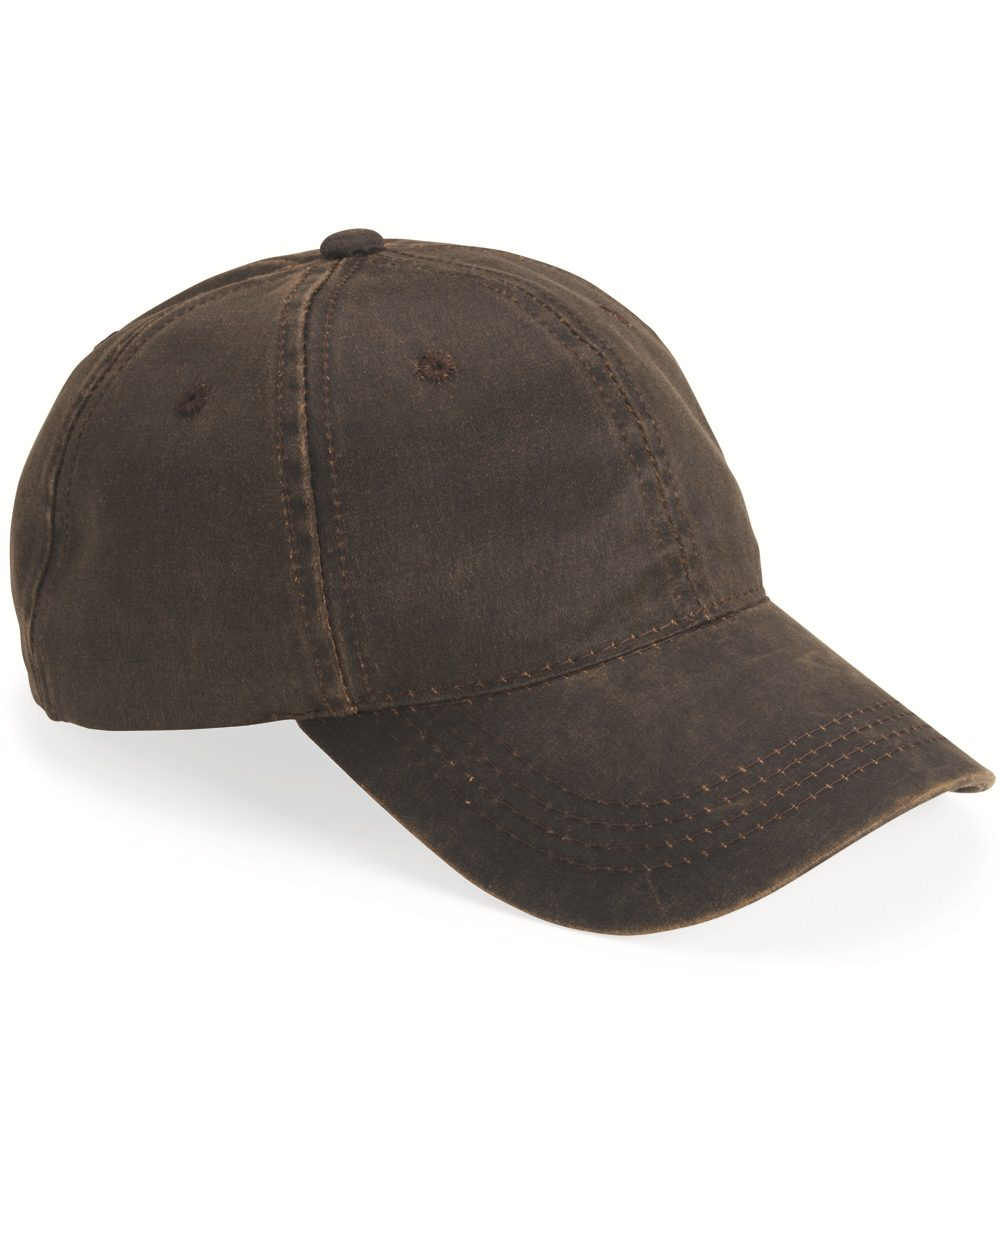 Outdoor Cap HPD605-Weathered Cotton Twill Cap